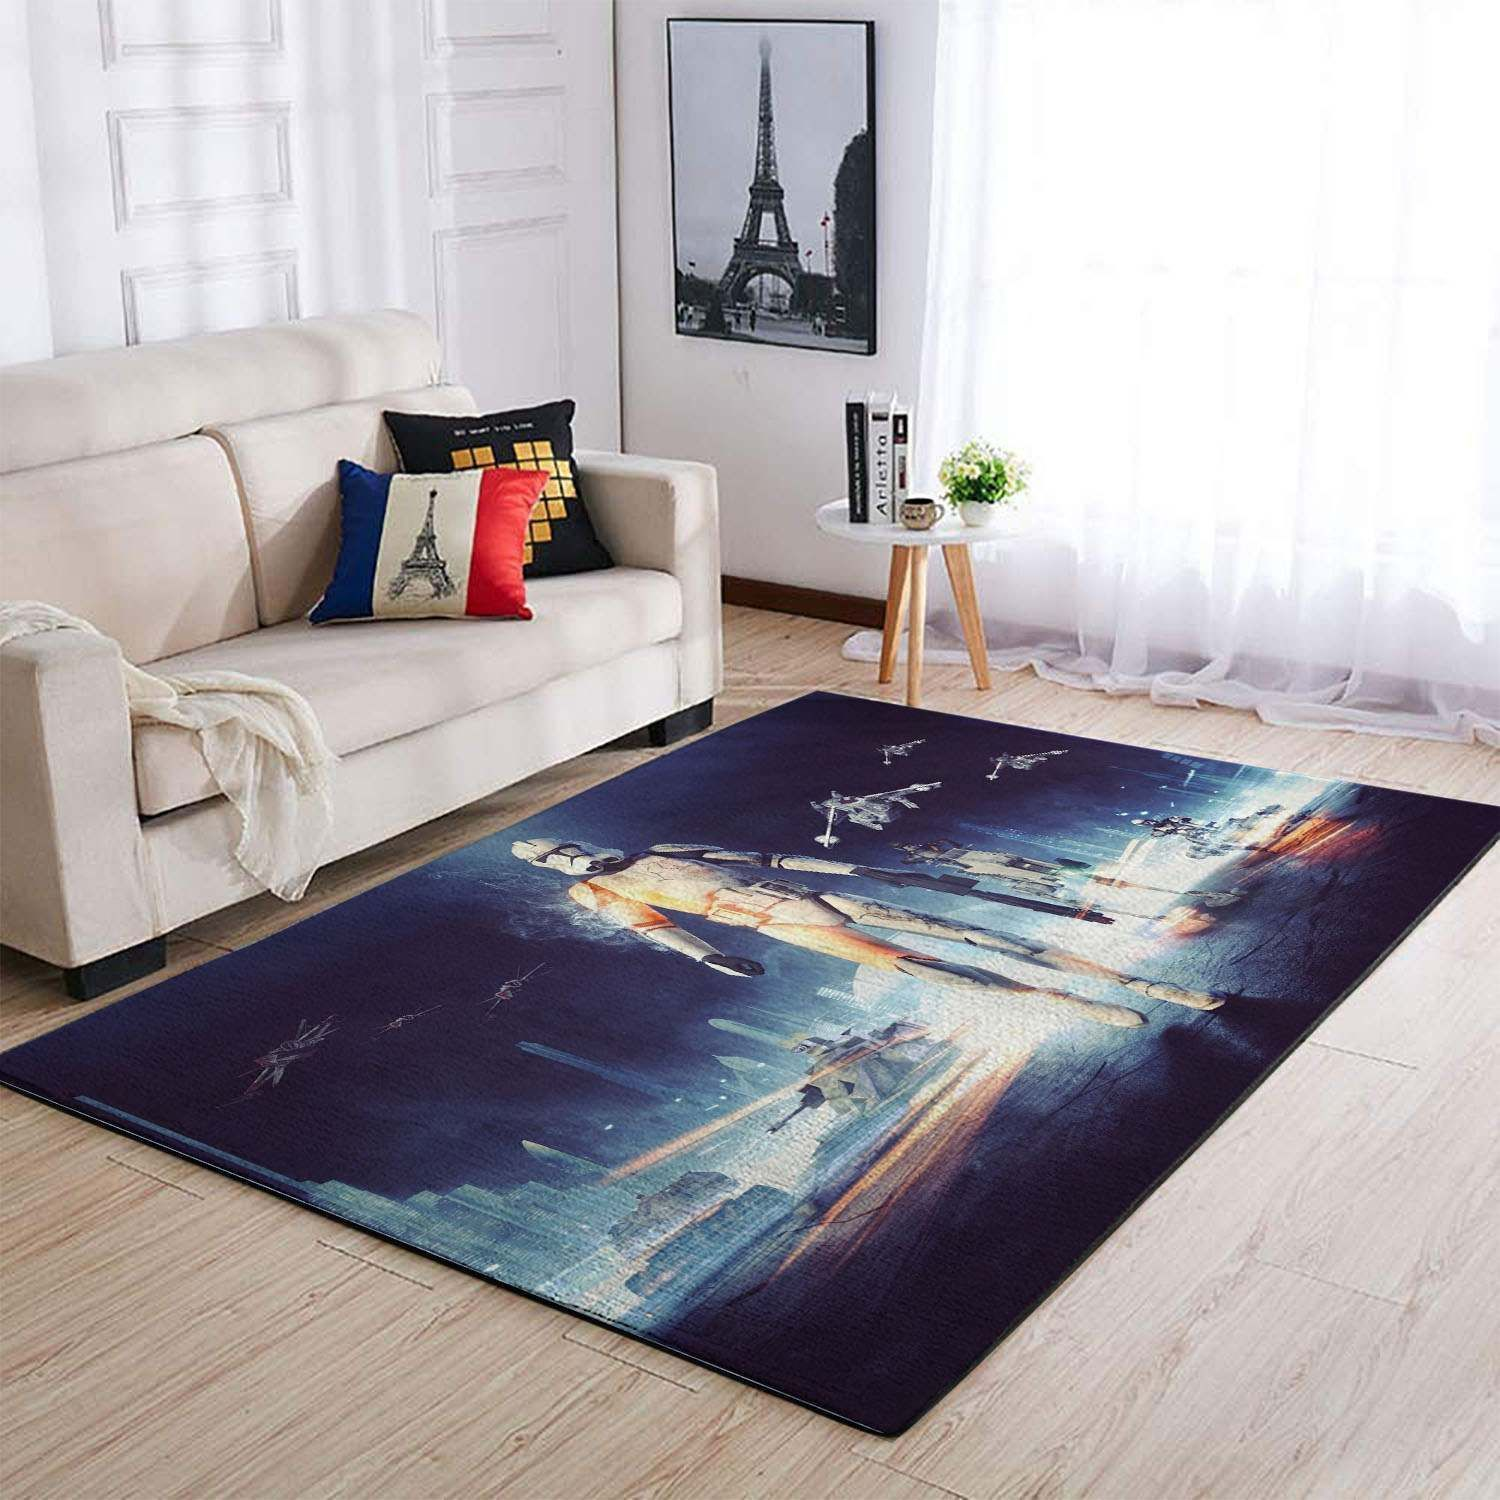 Clone Trooper Star Wars Rug